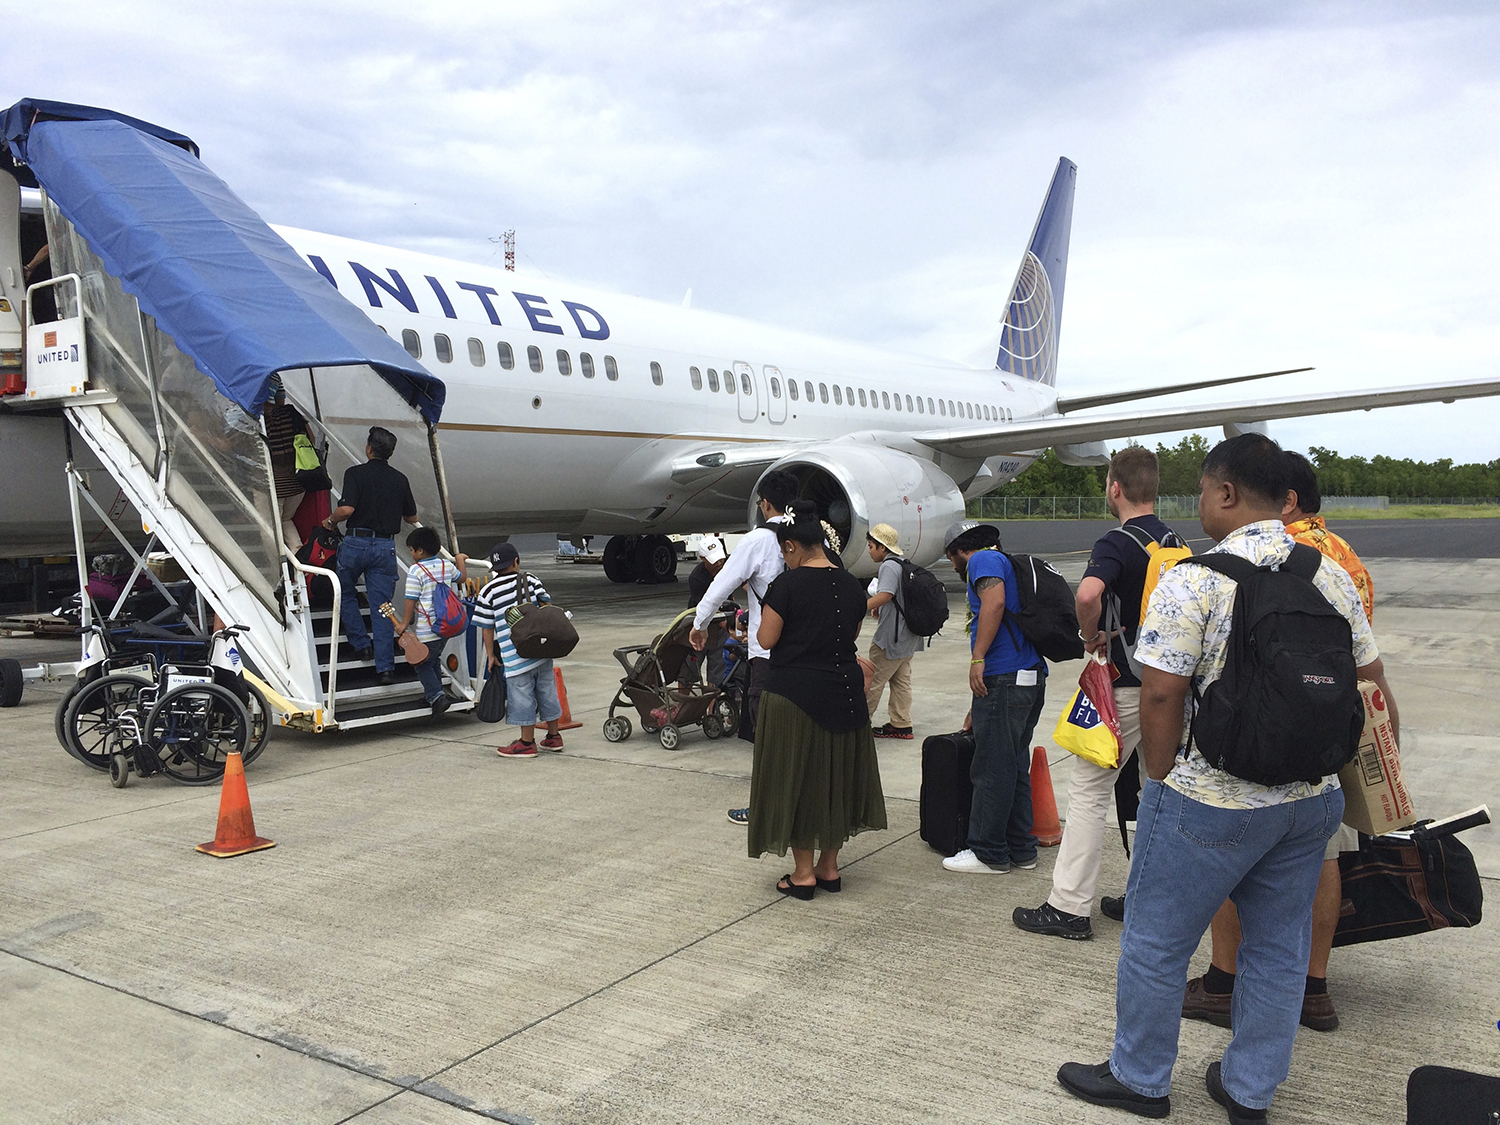 <p>United Airlines is the only commercial passenger service to much of Micronesia. Here, passengers board a flight at the international airport in Chuuk.</p>